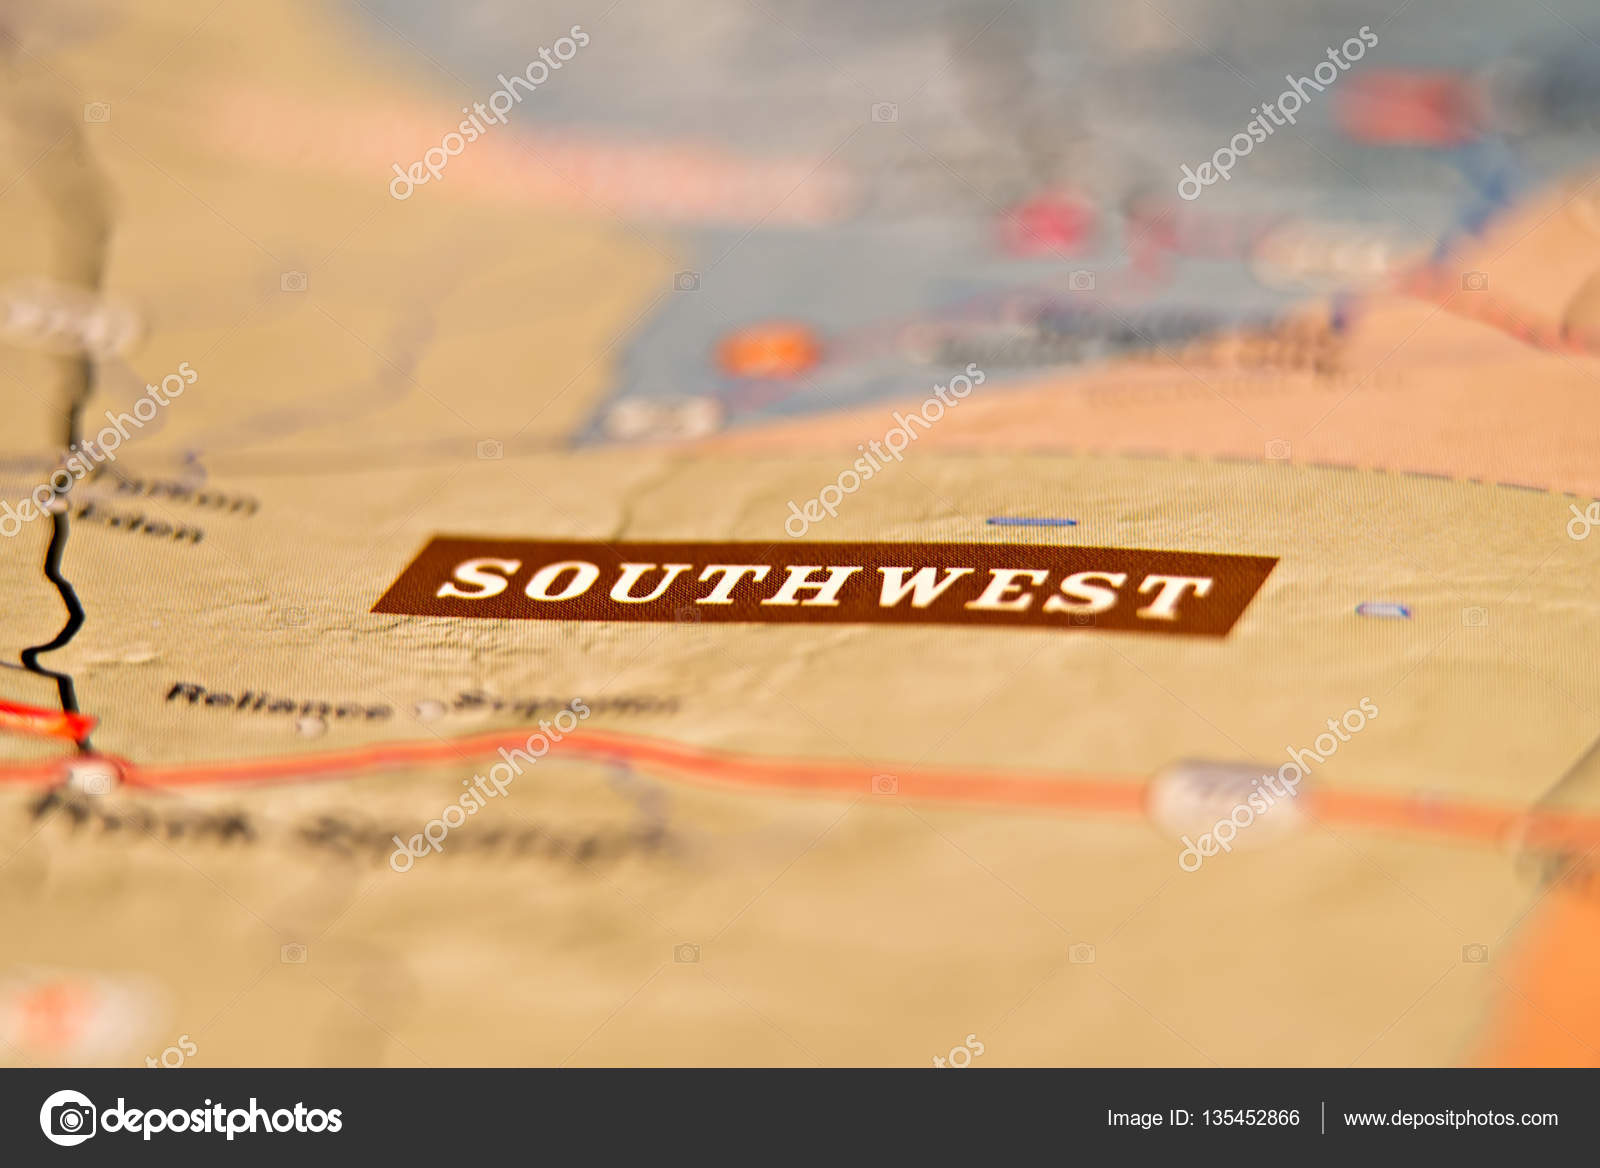 Southwest America Map.Southwest America Location Area Map Stock Photo C Digidream 135452866